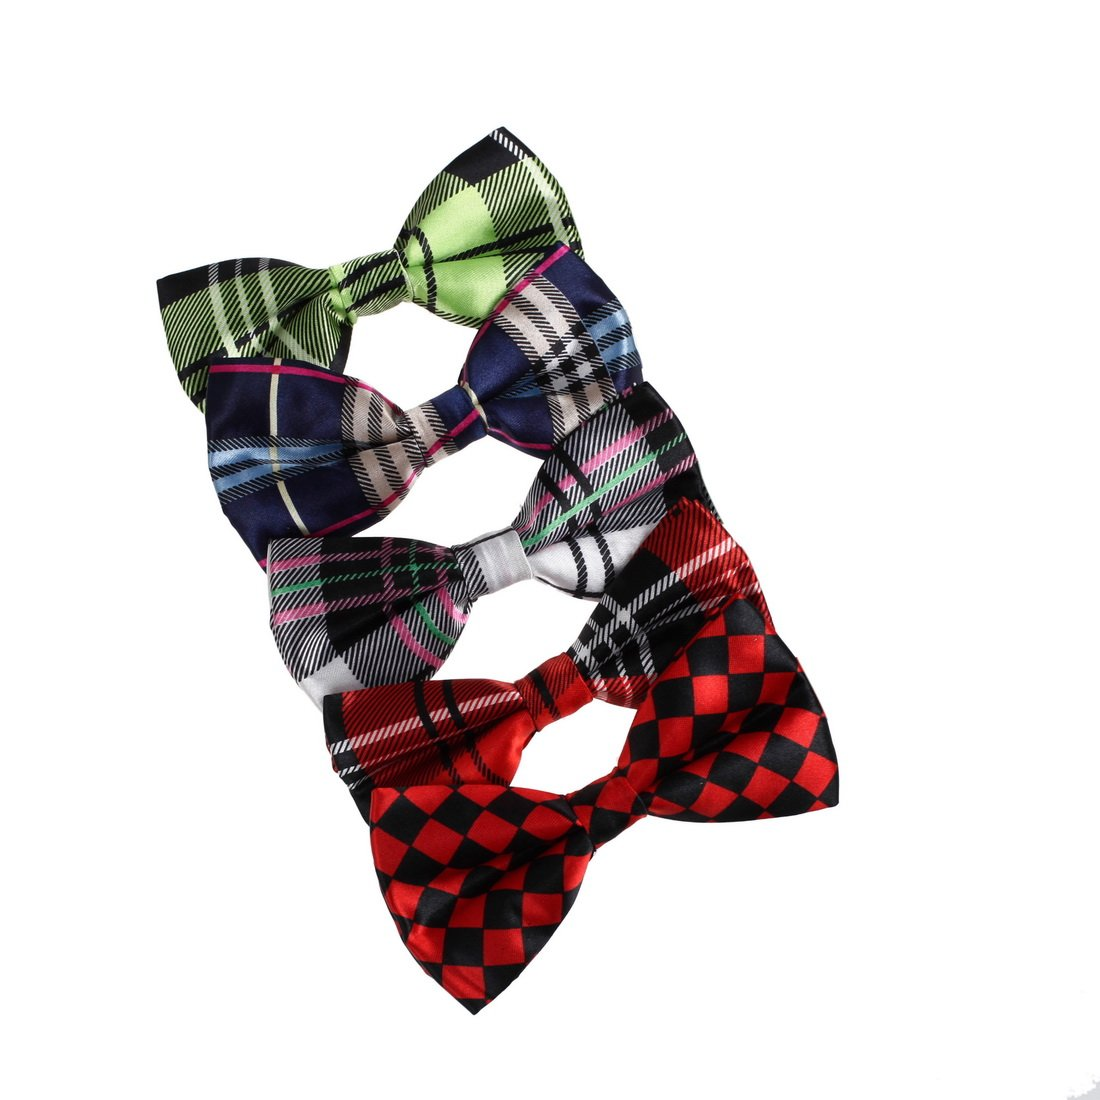 DBF0184 Excellent Bow Ties For Business Pre-tied Bow Ties - 5pc Luxury For Party By Dan Smith